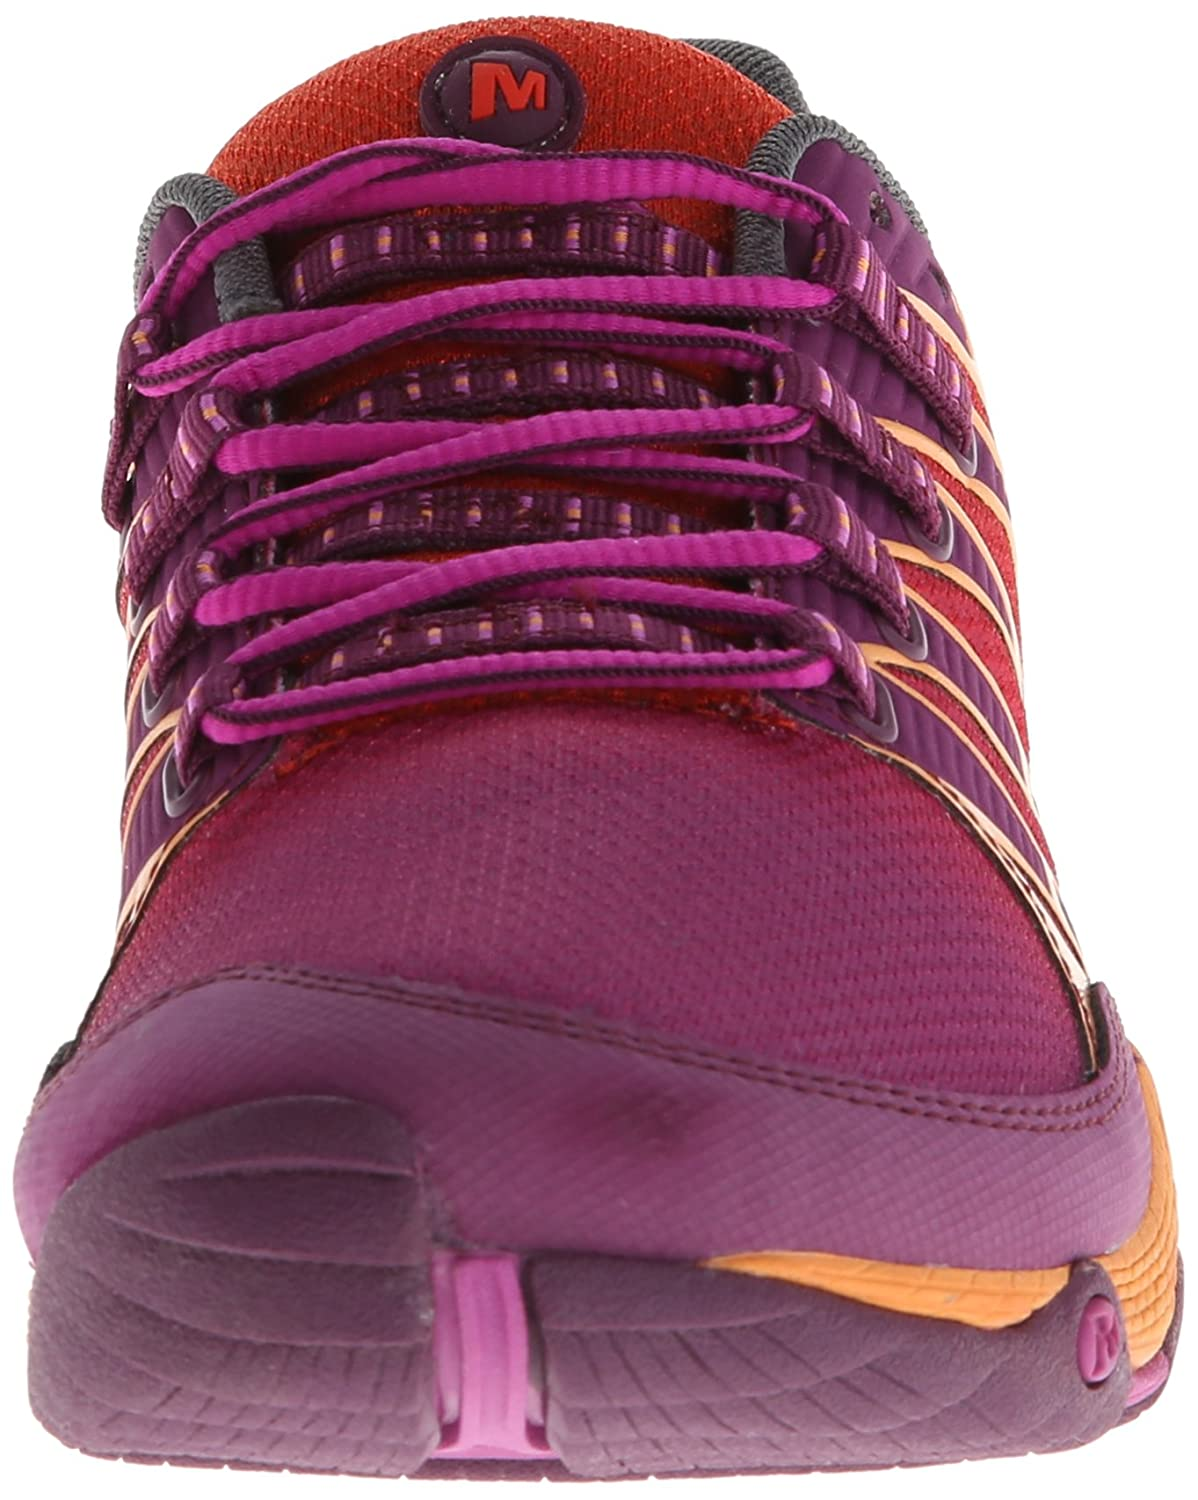 Merrell Women s Allout Fuse Trail Running Shoe